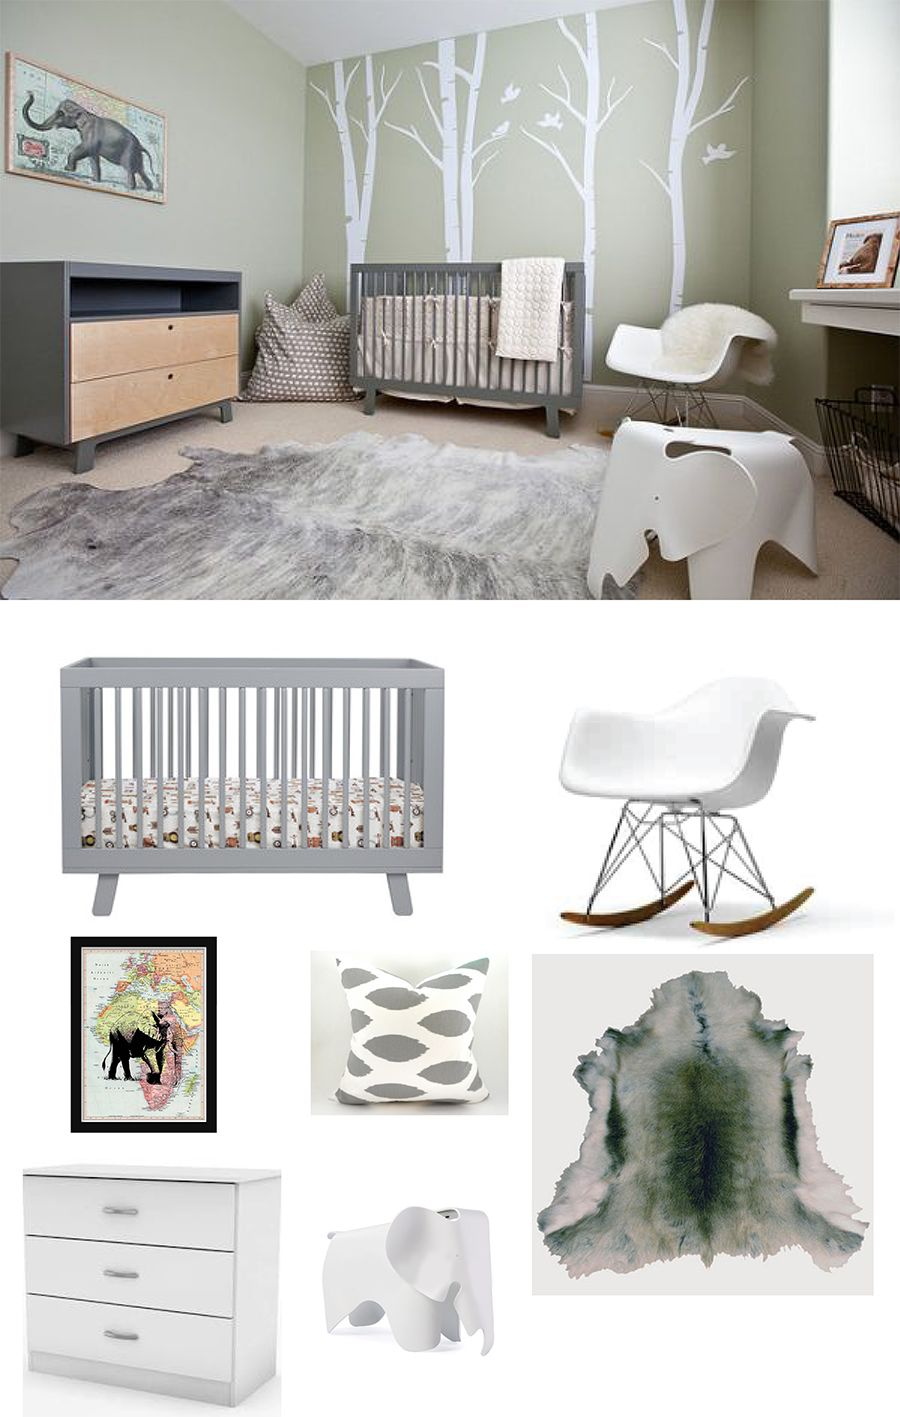 Two chic ideas for baby king george 39 s africa themed nursery rooms for the little ones - Baby jungenzimmer ...